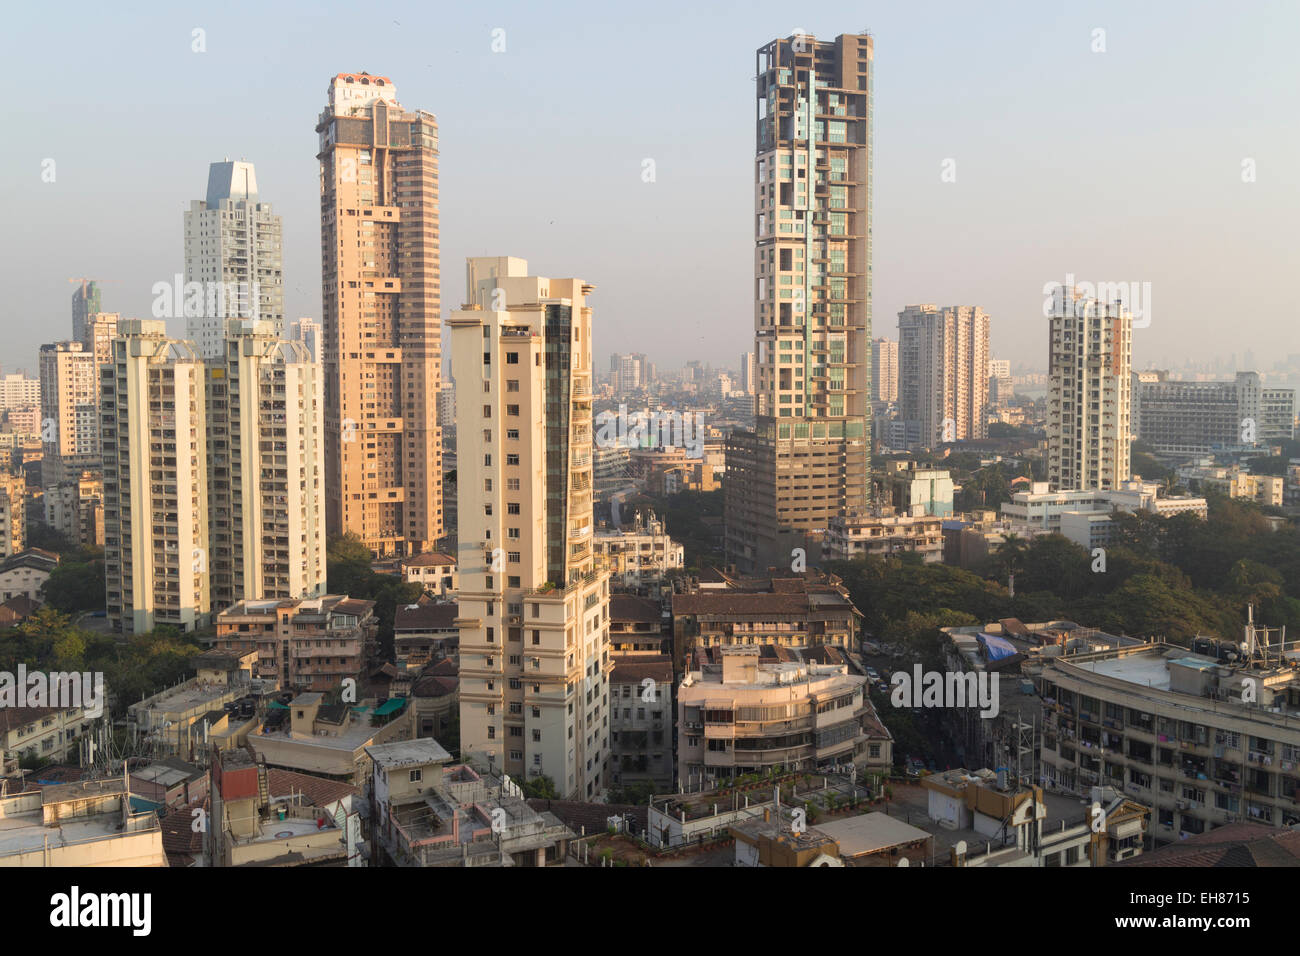 Mumbai City Stock Photos & Mumbai City Stock Images - Alamy